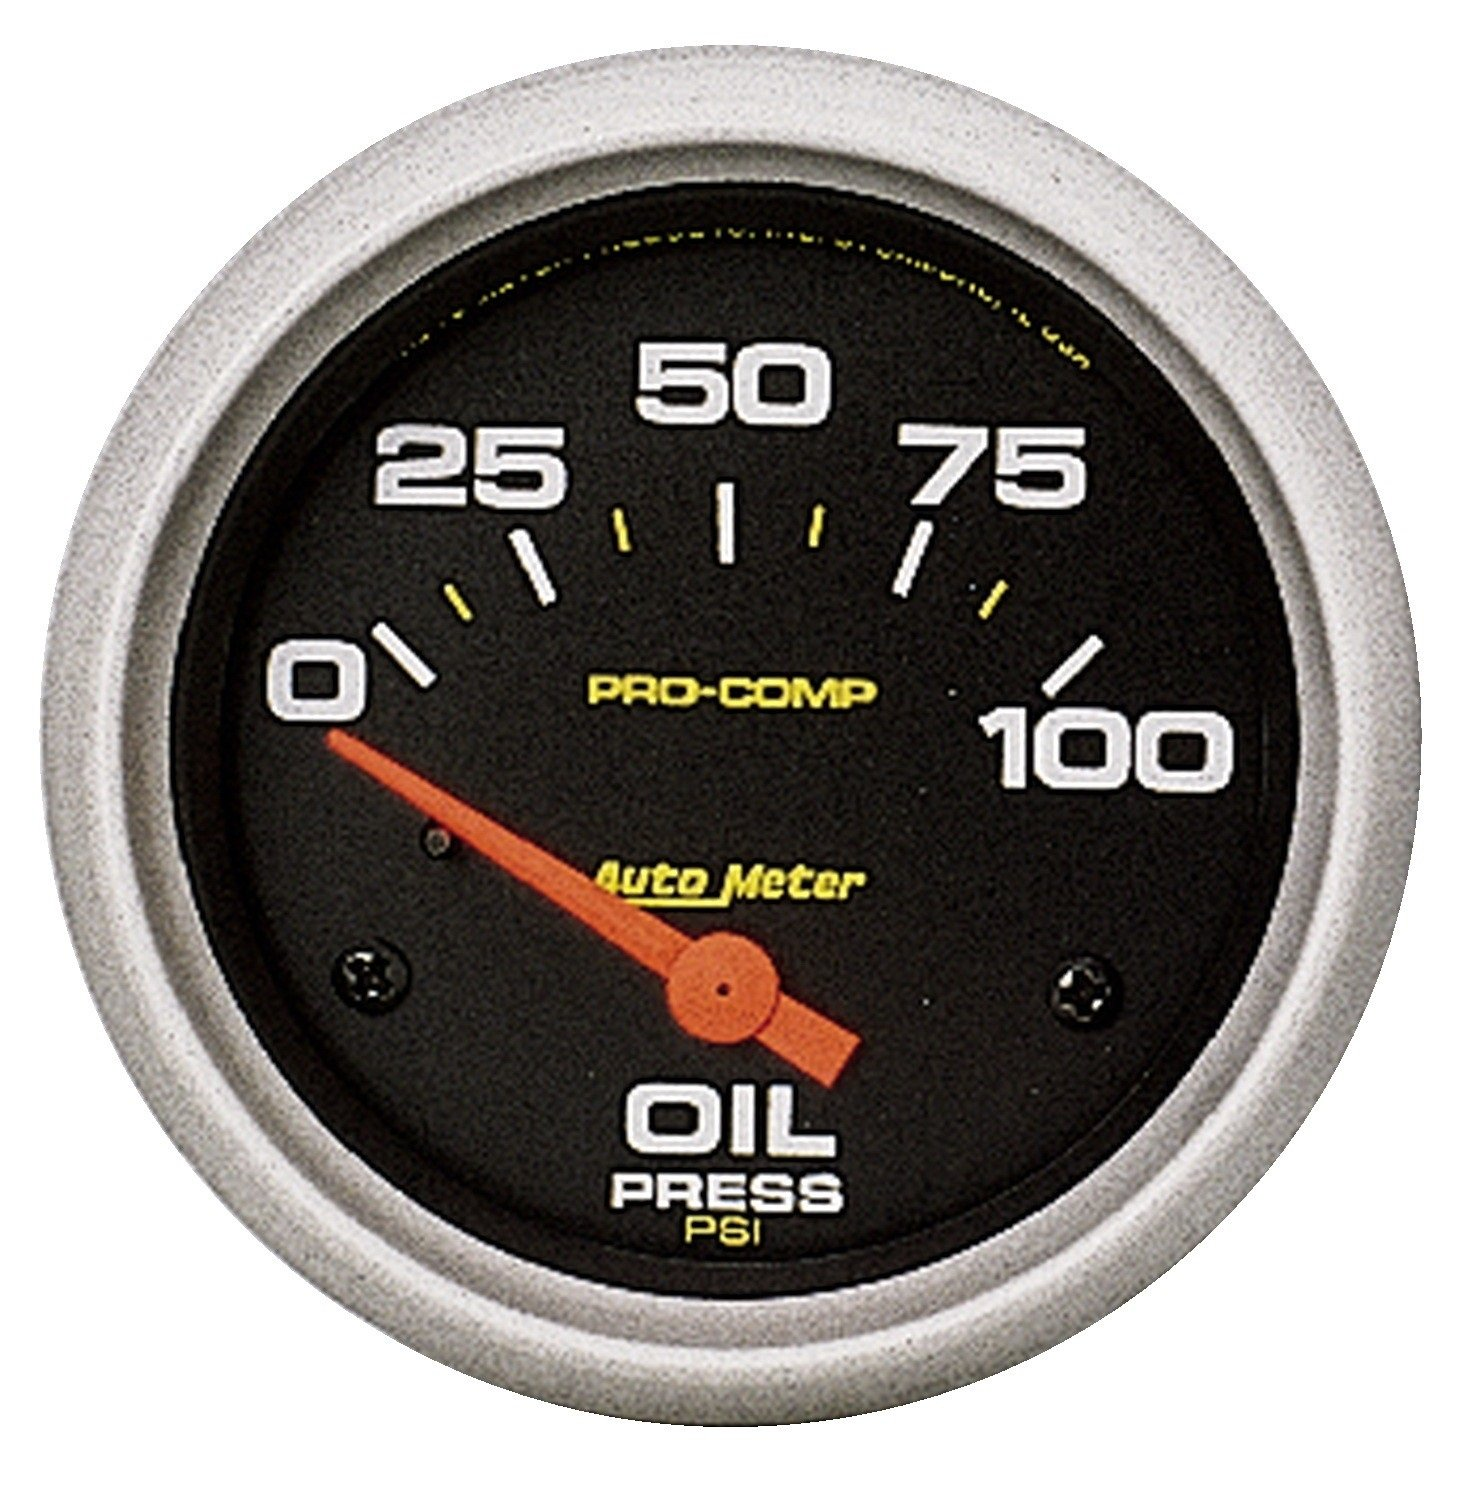 Auto Meter 5427 Pro-Comp Electric Oil Pressure Gauge